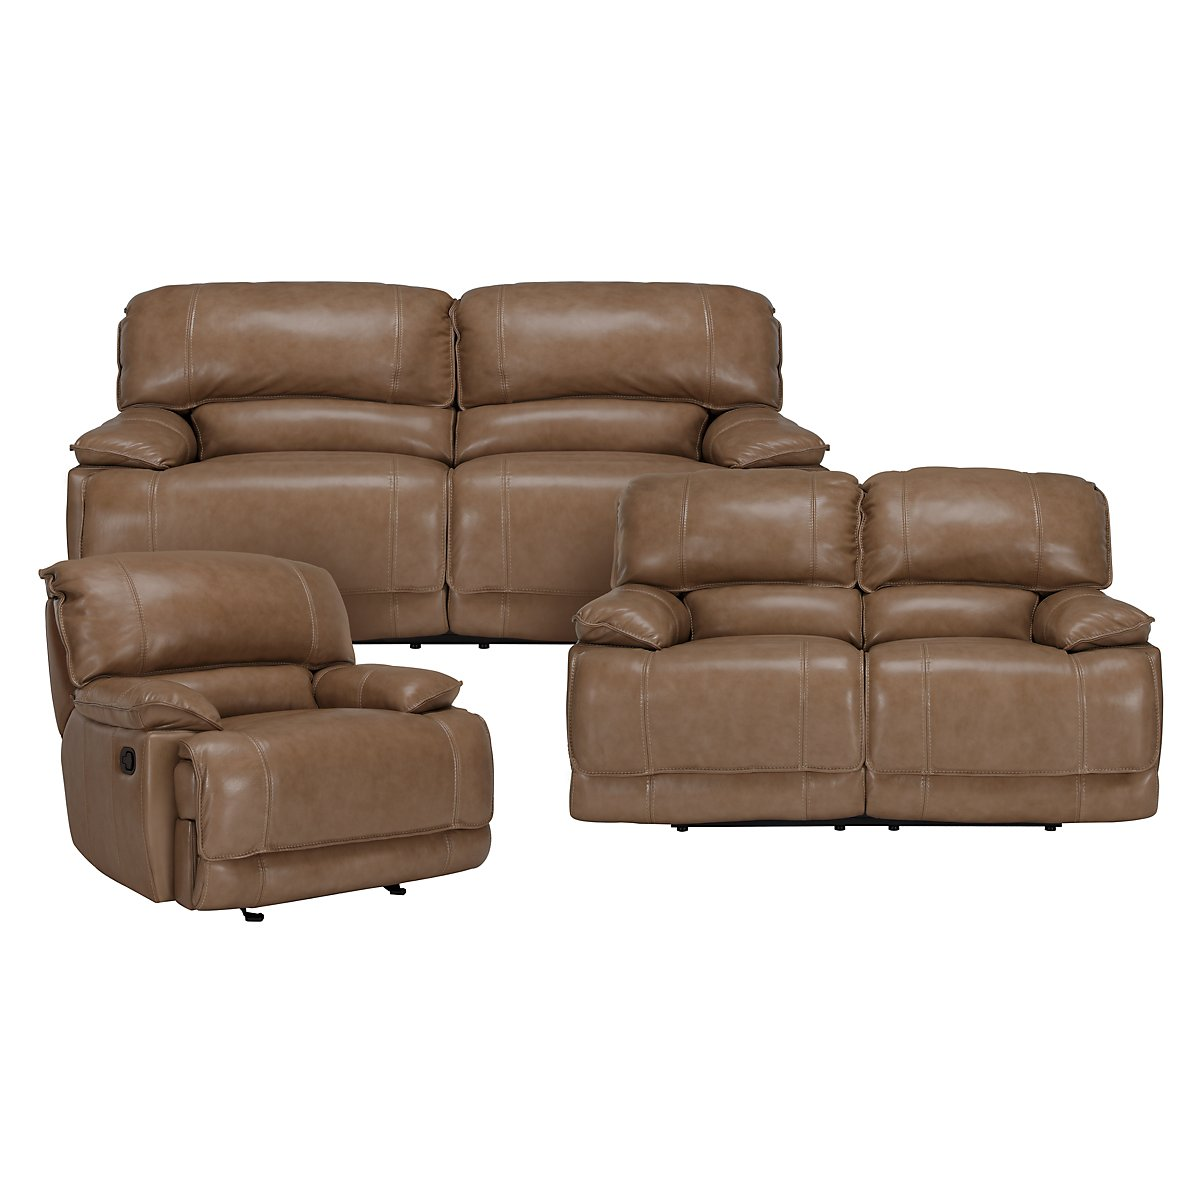 Benson Dark Taupe Leather & Vinyl Manually Reclining Living Room